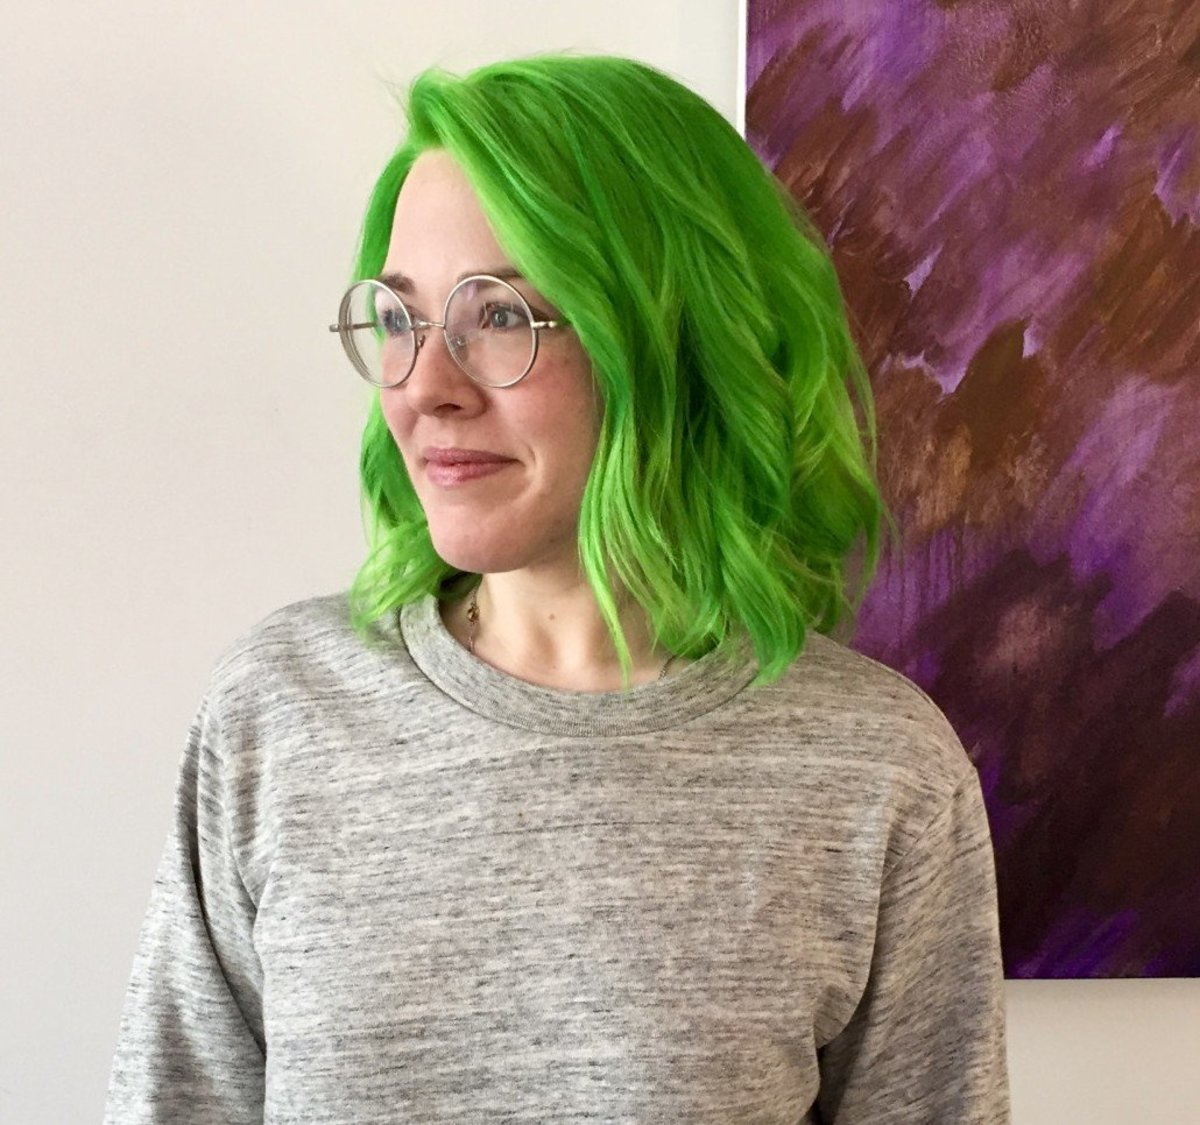 Offer Up Atlanta >> Hair DIY: 5 Ideas for Green Hair and How to Do Them at Home | Bellatory